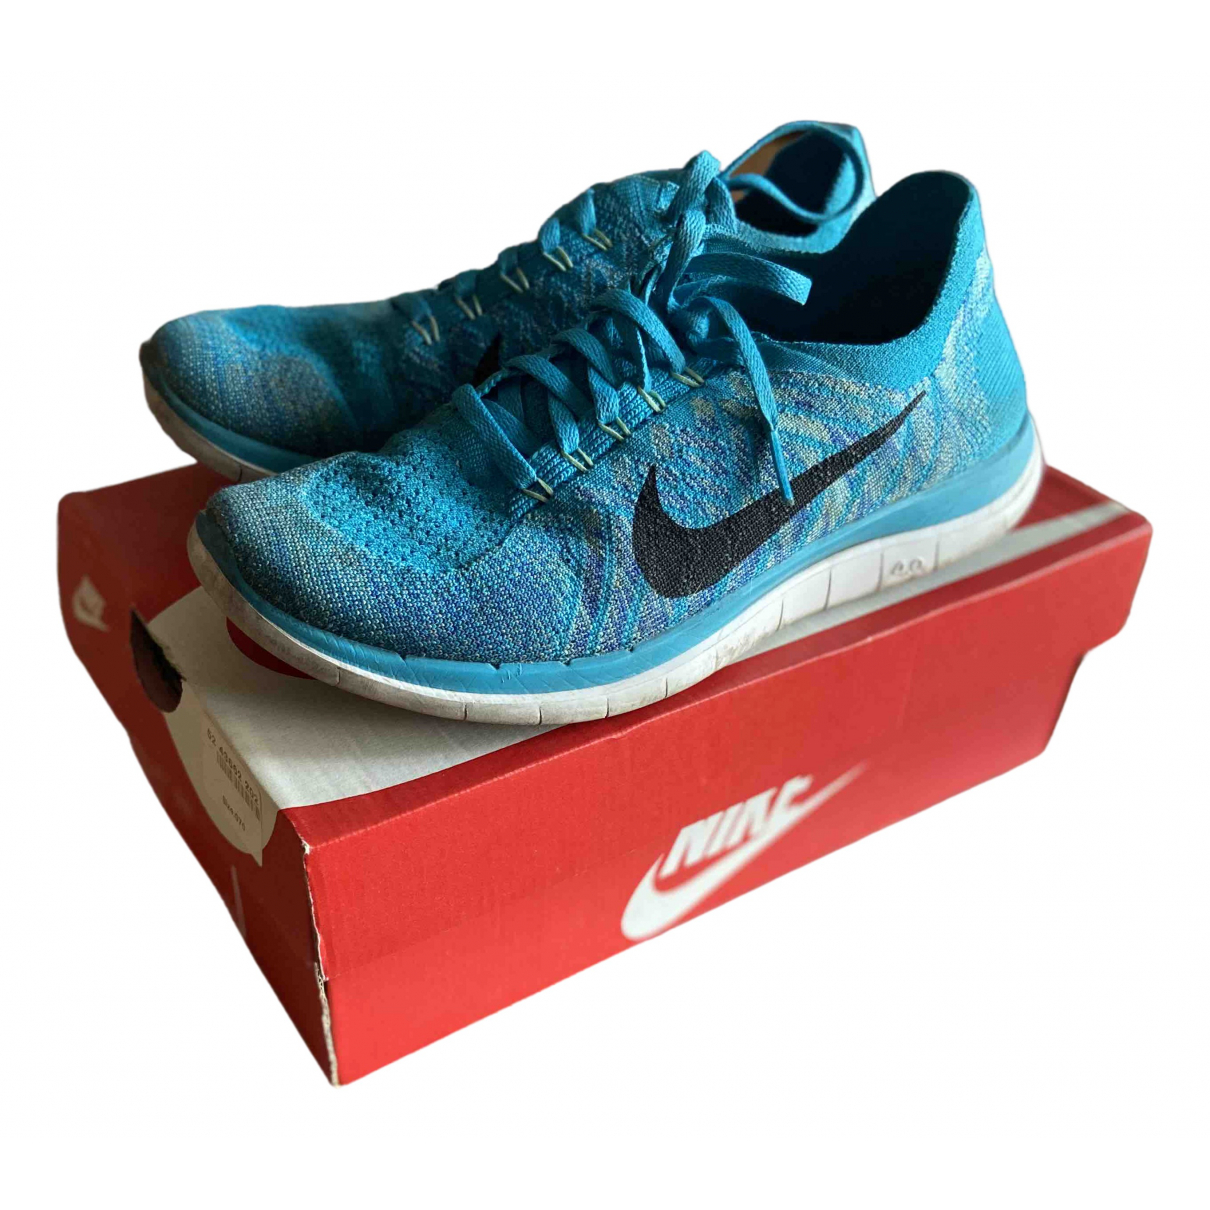 Nike Free Run Blue Cloth Trainers for Women 39 EU